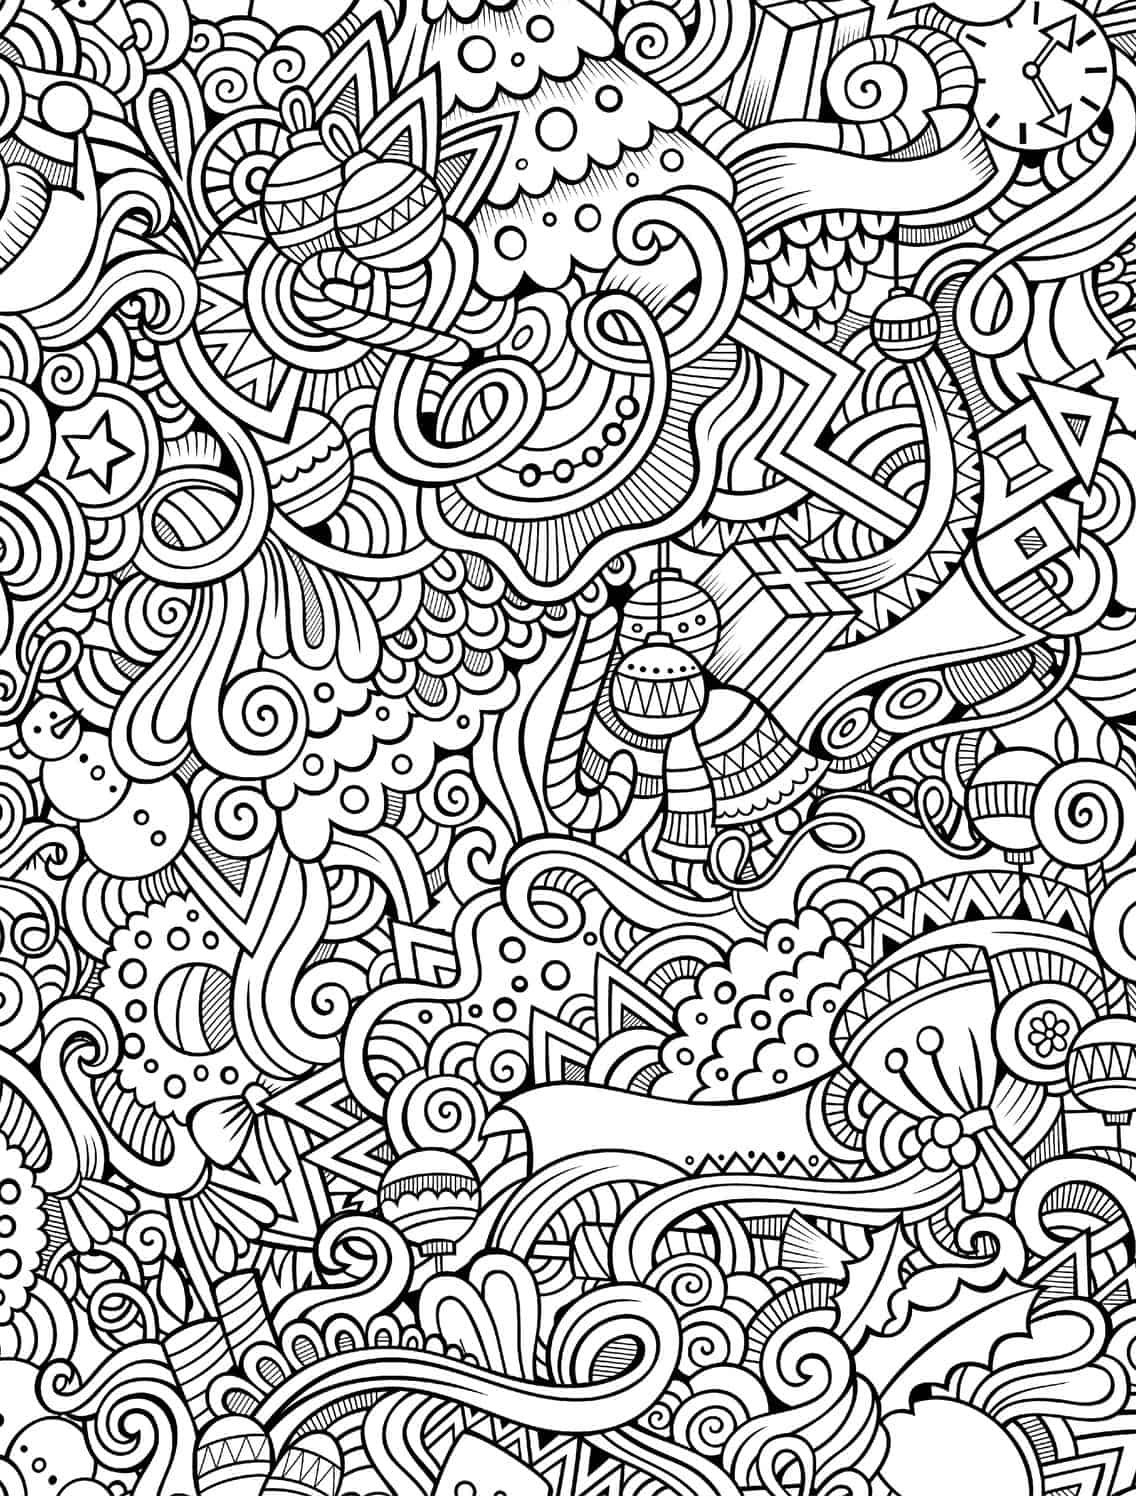 jpeg for all here - Christmas Coloring Pages For Adults